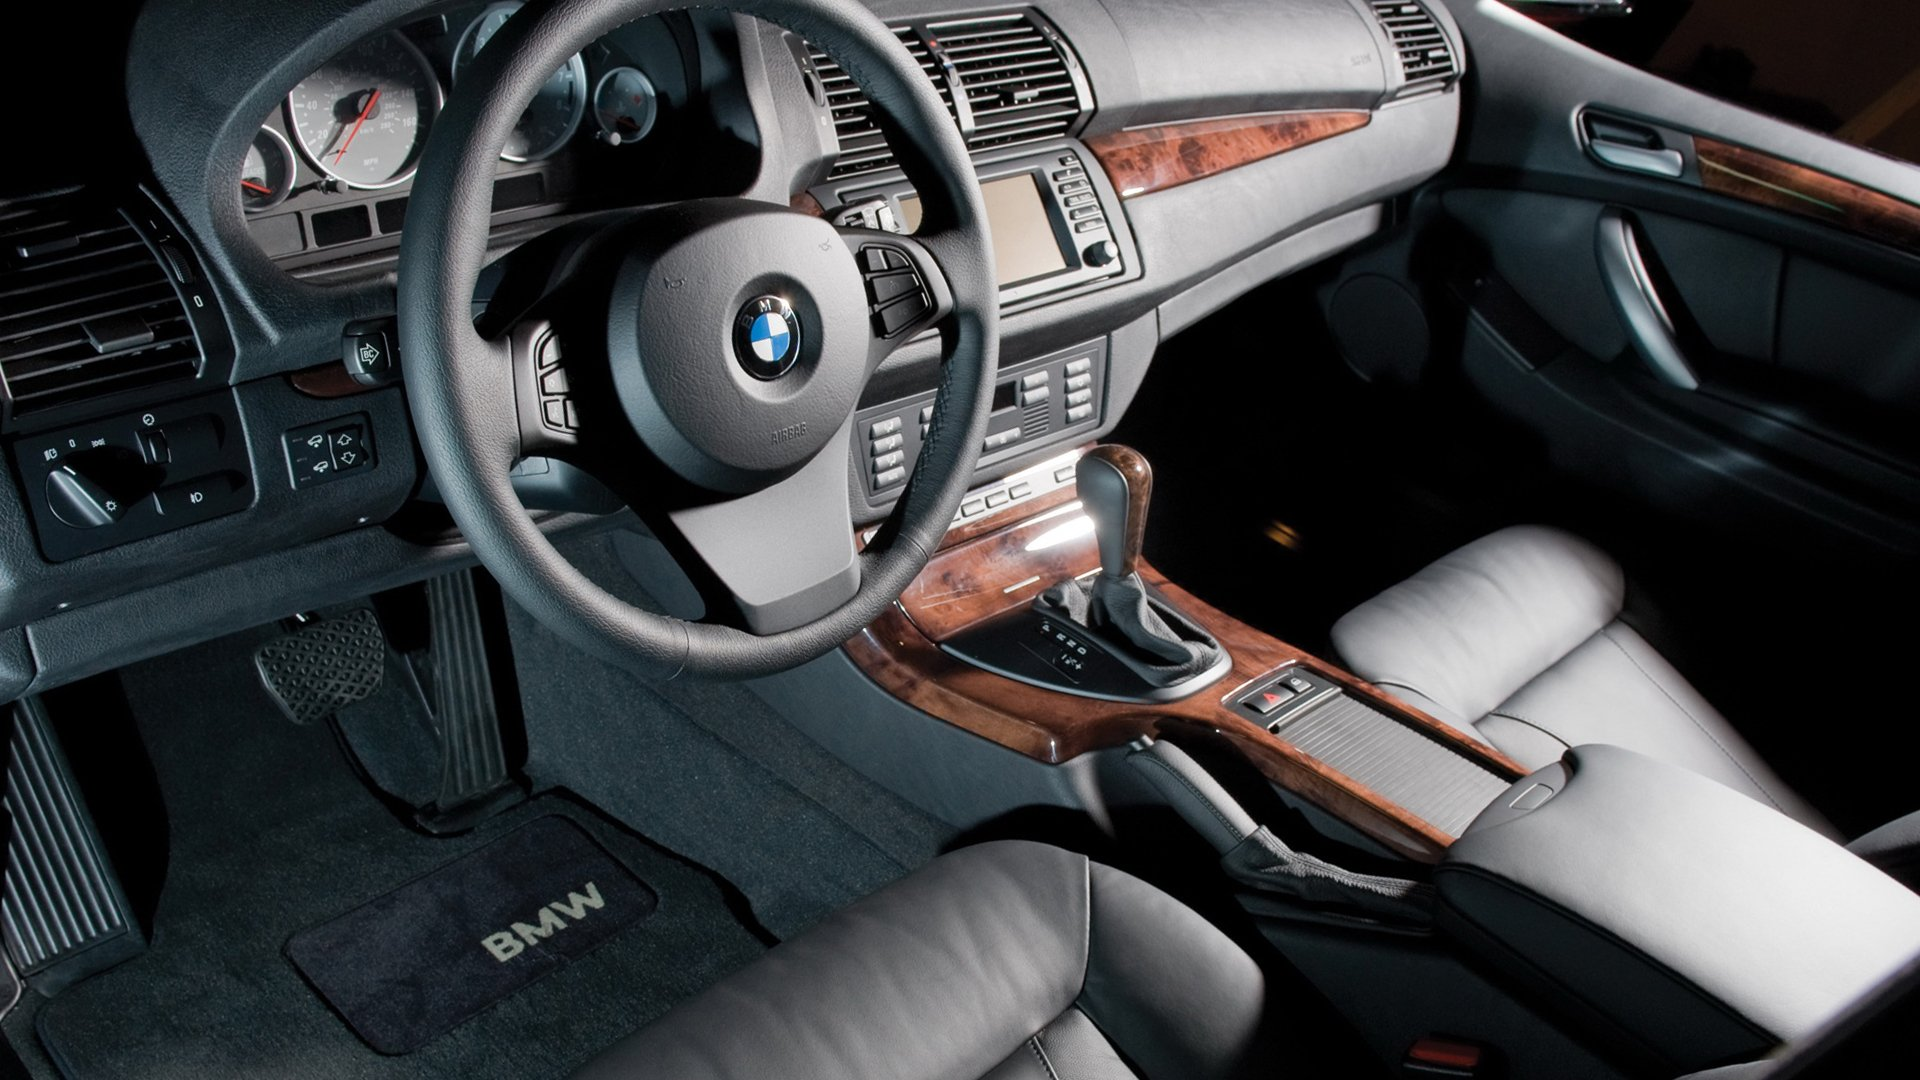 BMW X5 Interior Model HD